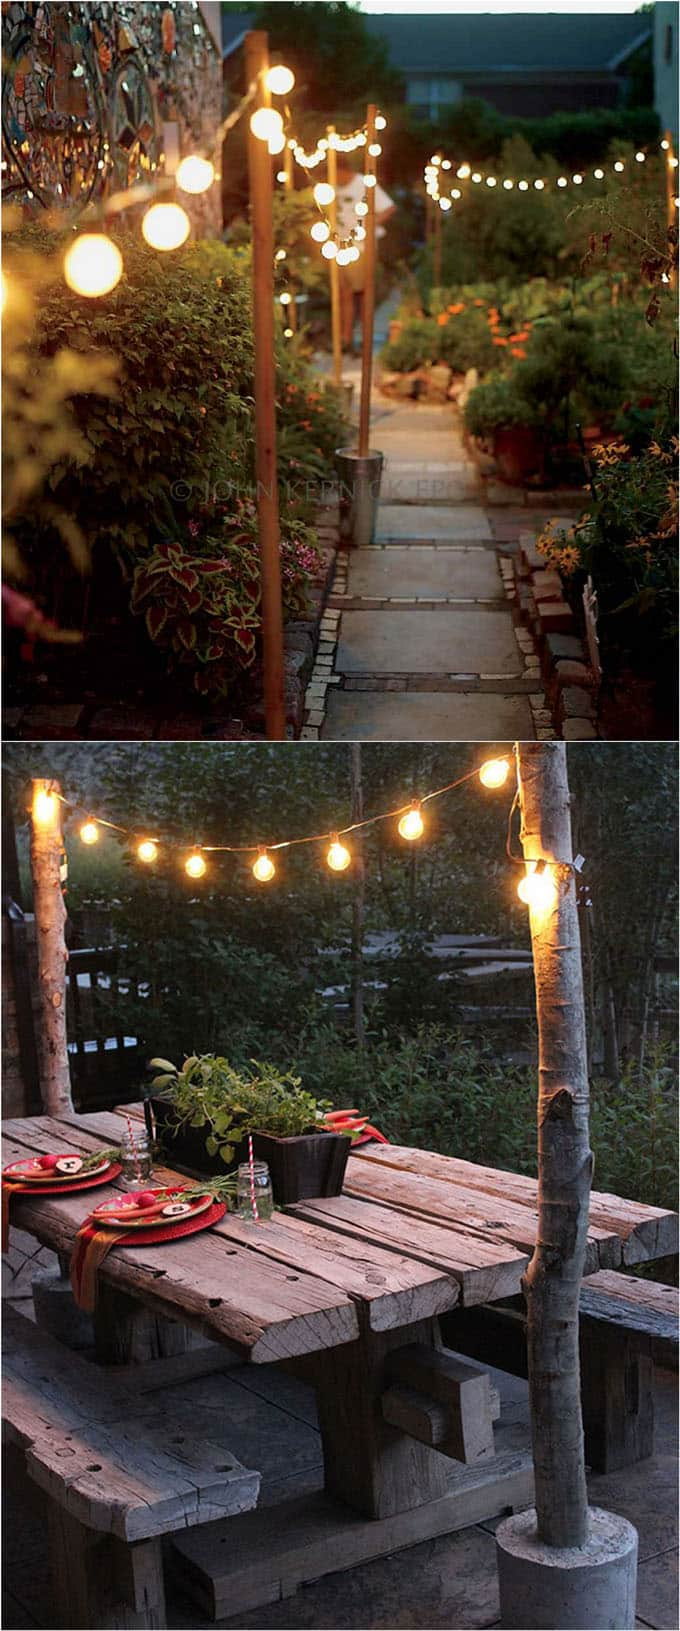 using market string lights to create beautiful patio, porch, & backyard lighting